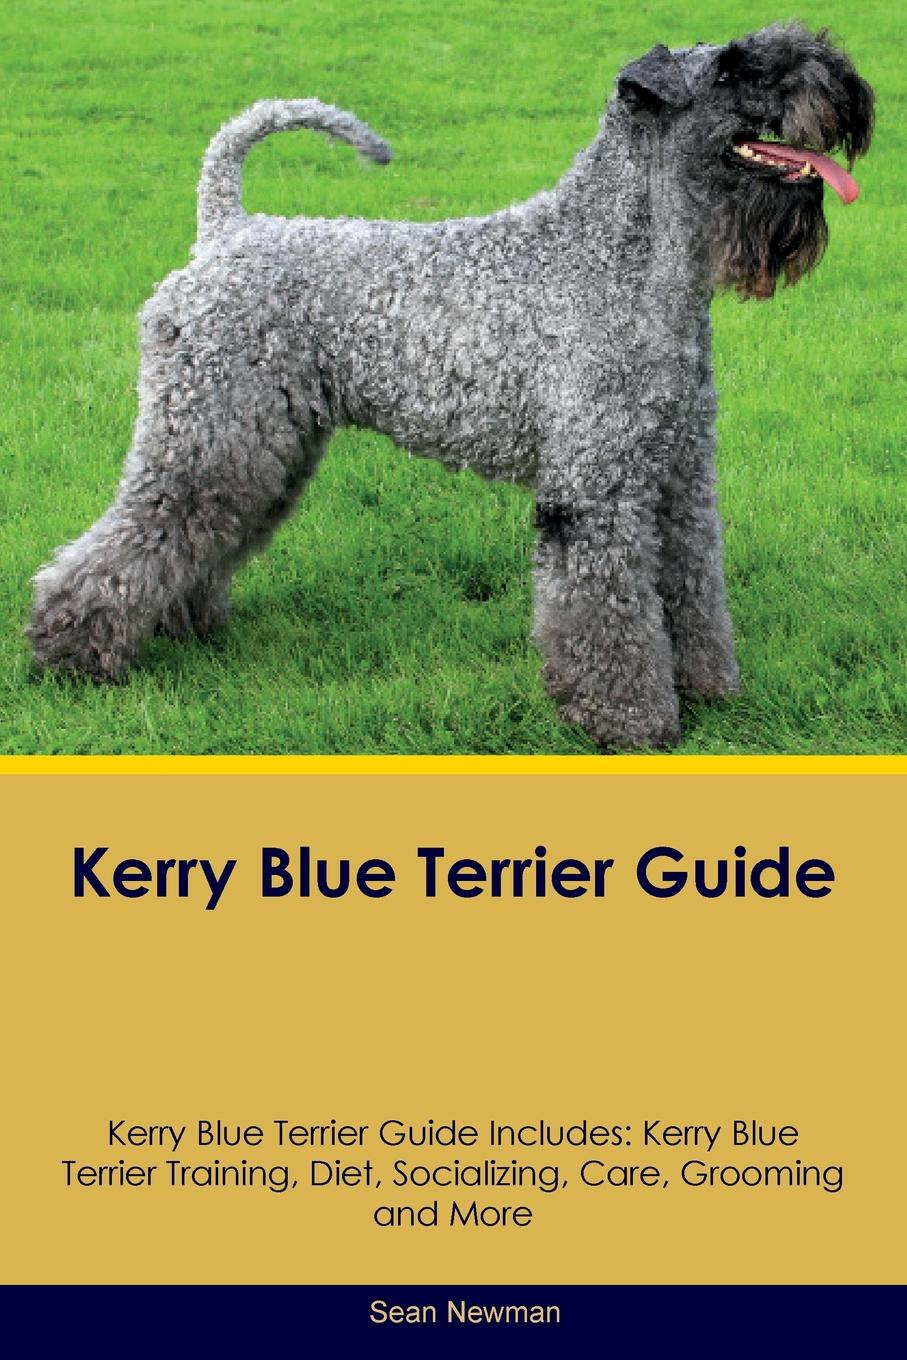 Sean Newman Kerry Blue Terrier Guide Includes. Training, Diet, Socializing, Care, Grooming, Breeding and More